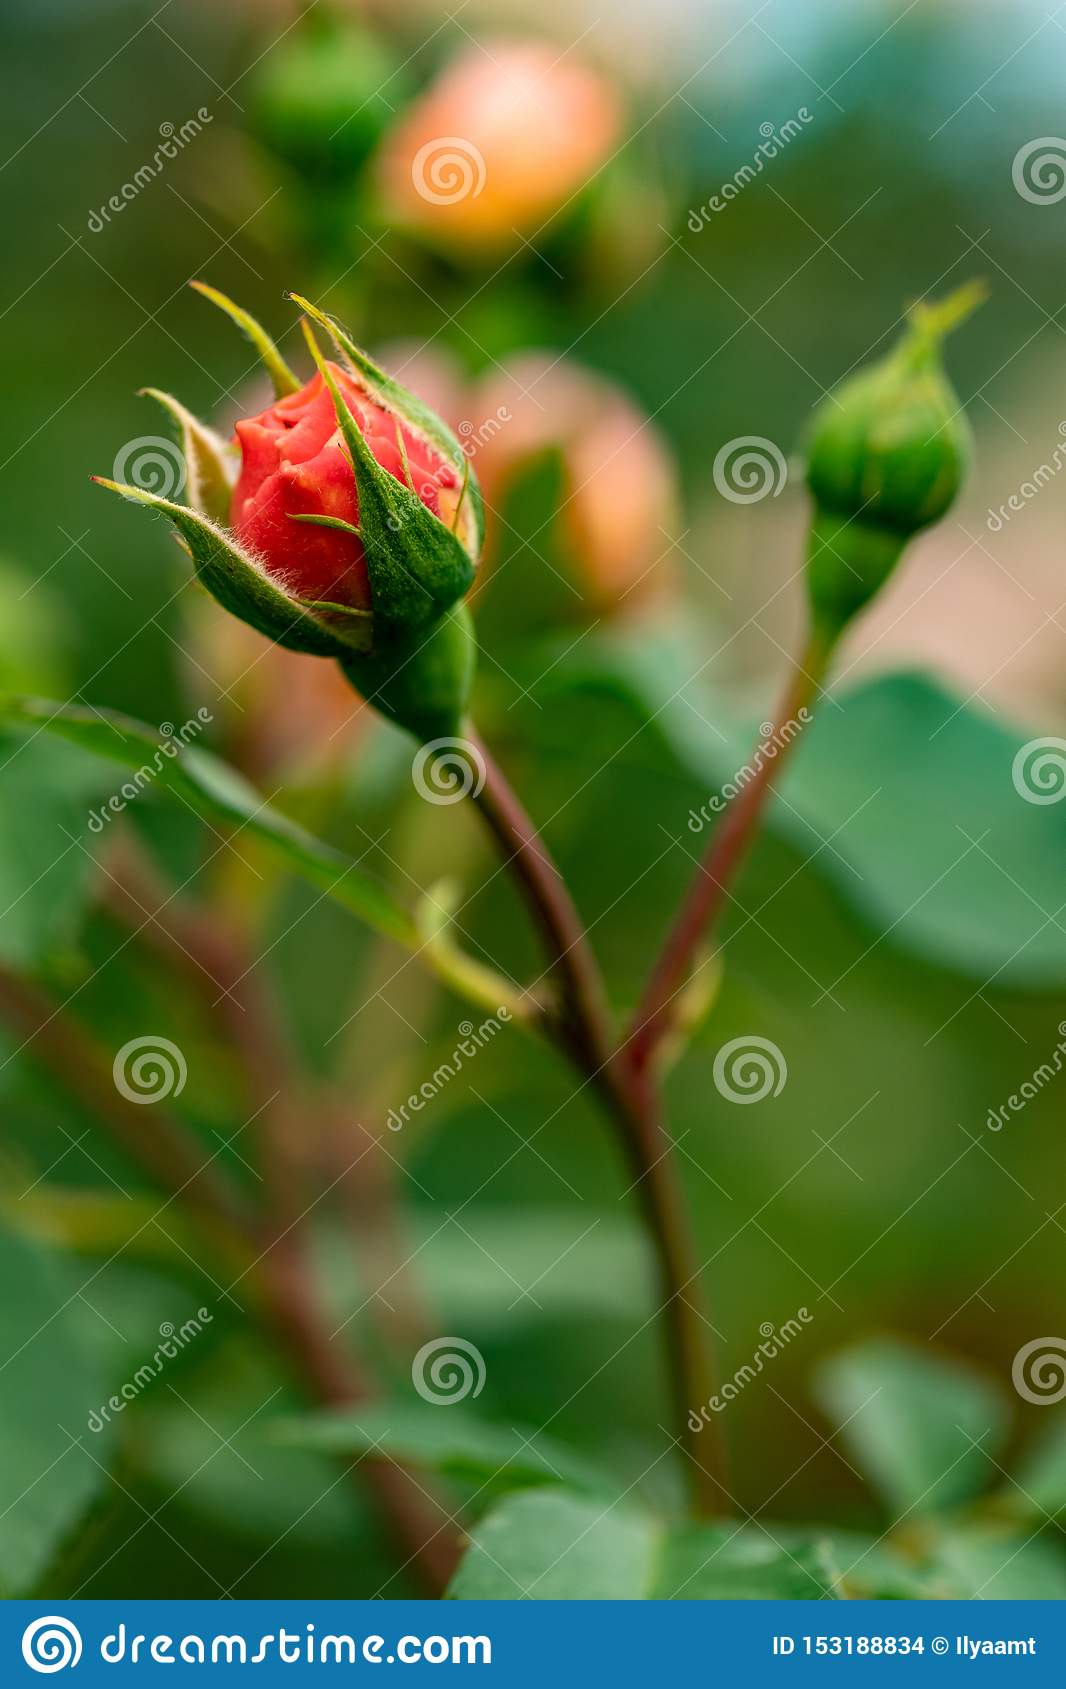 New red rose bud. Young graceful spray rose. A small bud of a blooming flower. Closeup of a rose bud in a garden. Natural backgrou